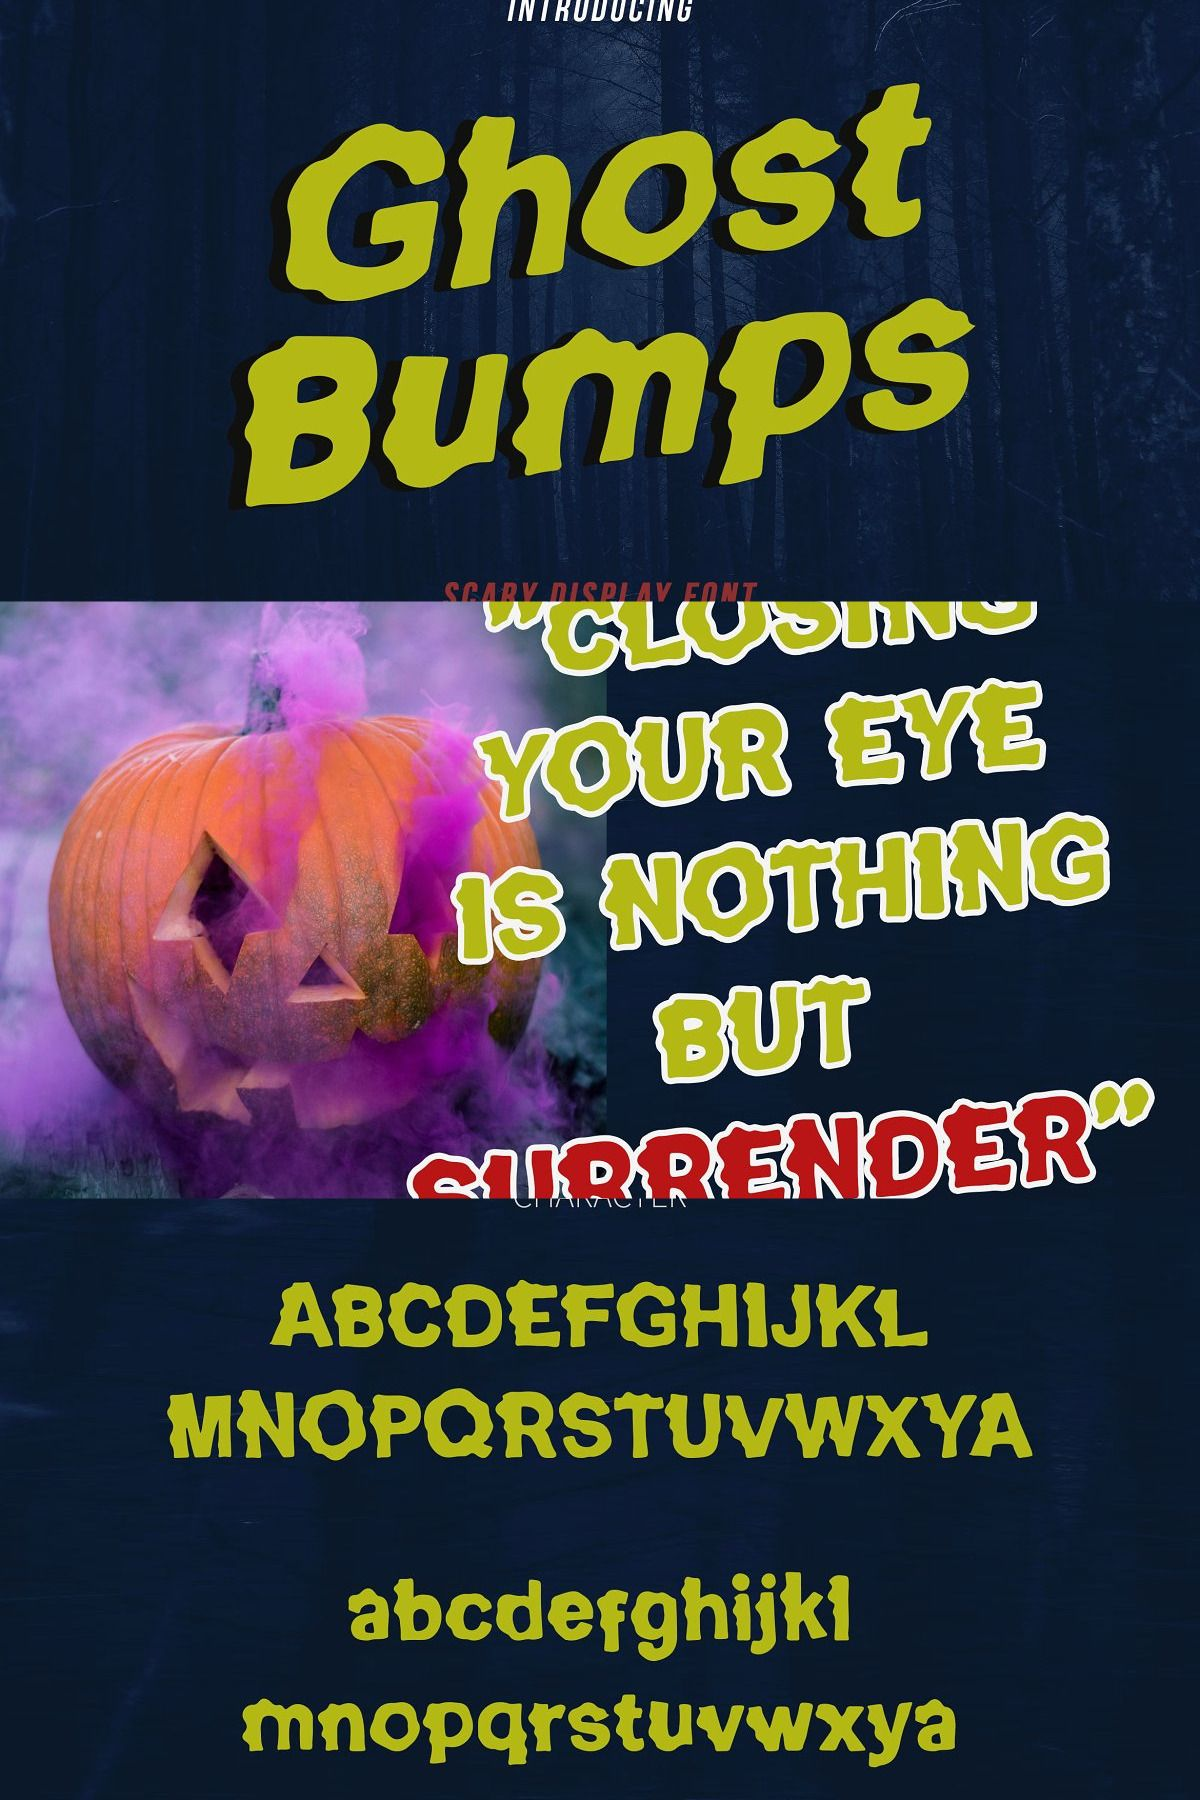 GhostBumps - Scary Display Font RG